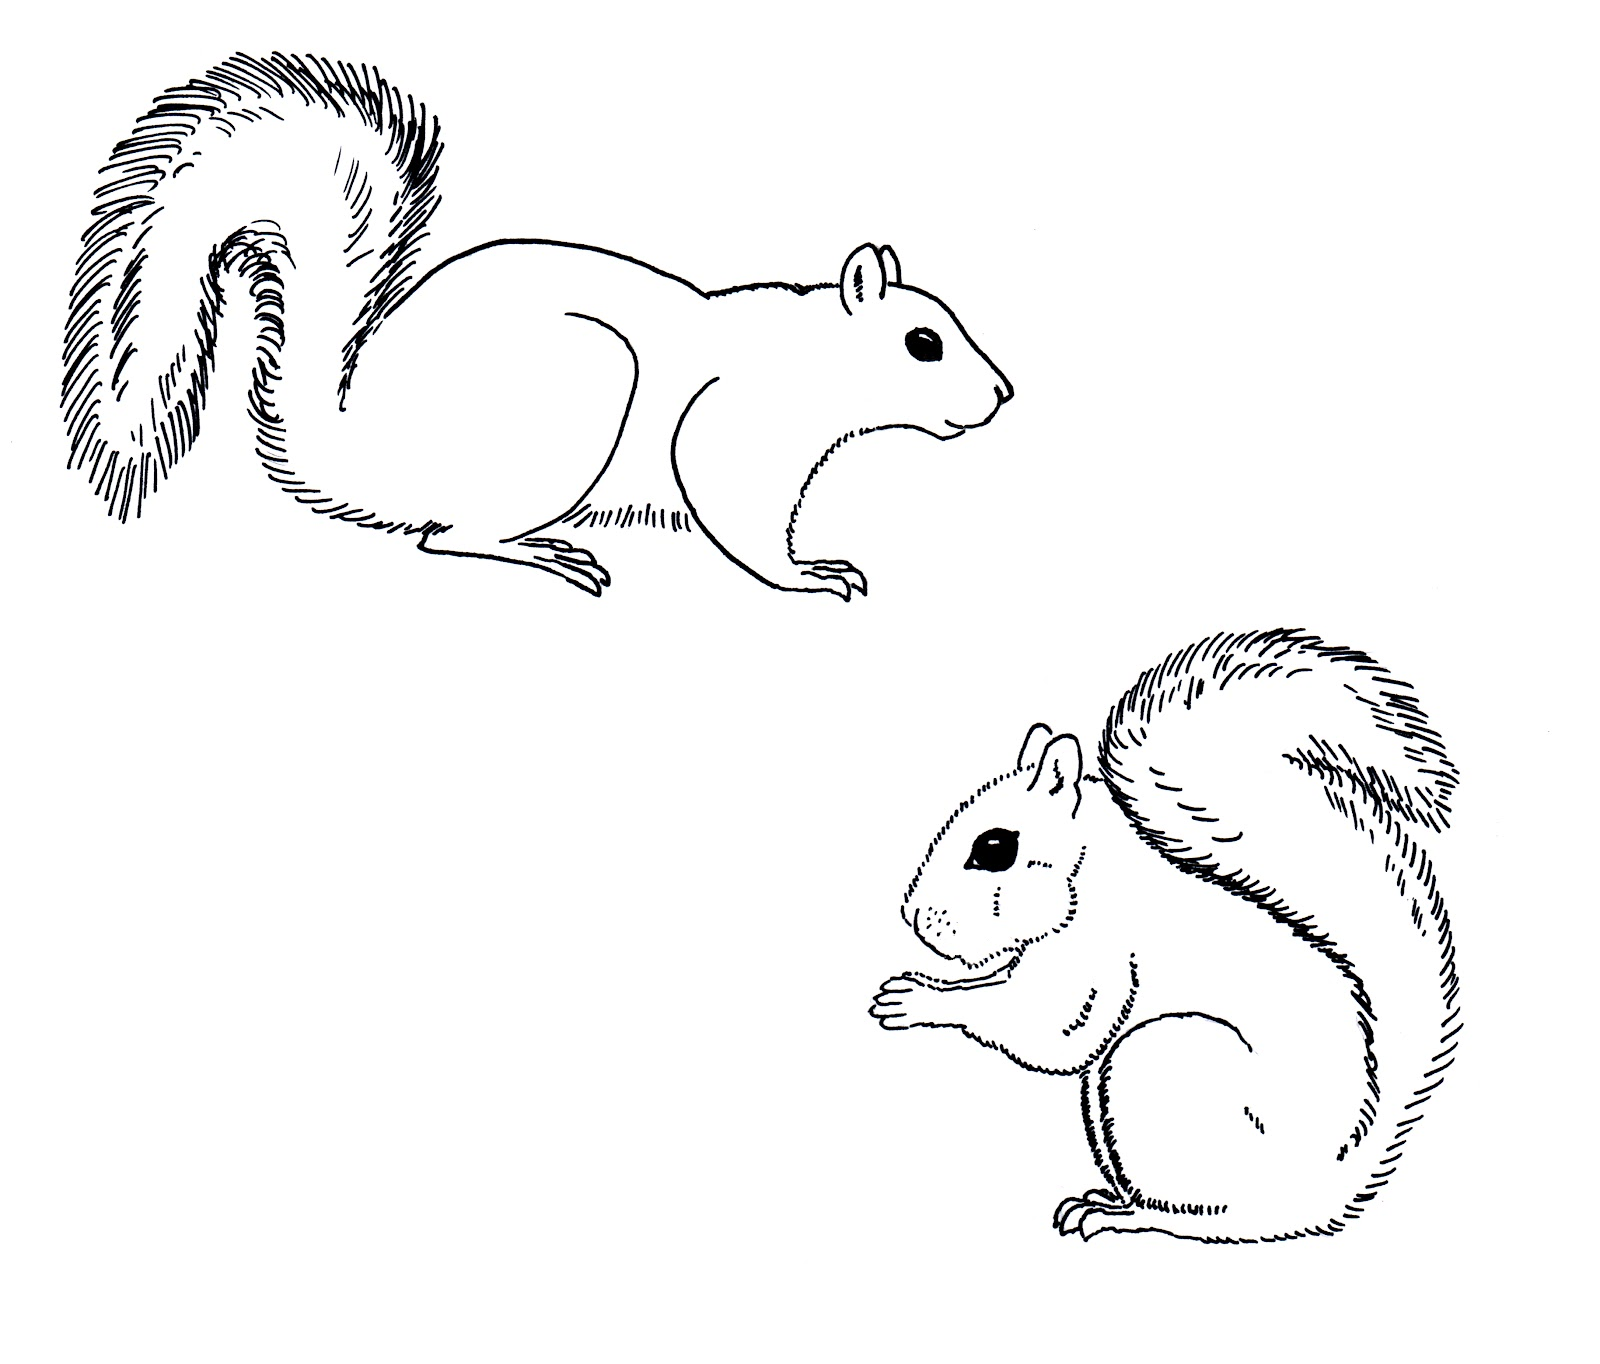 Drawn rodent gray Coloring Does Squirrels 2012 Art: